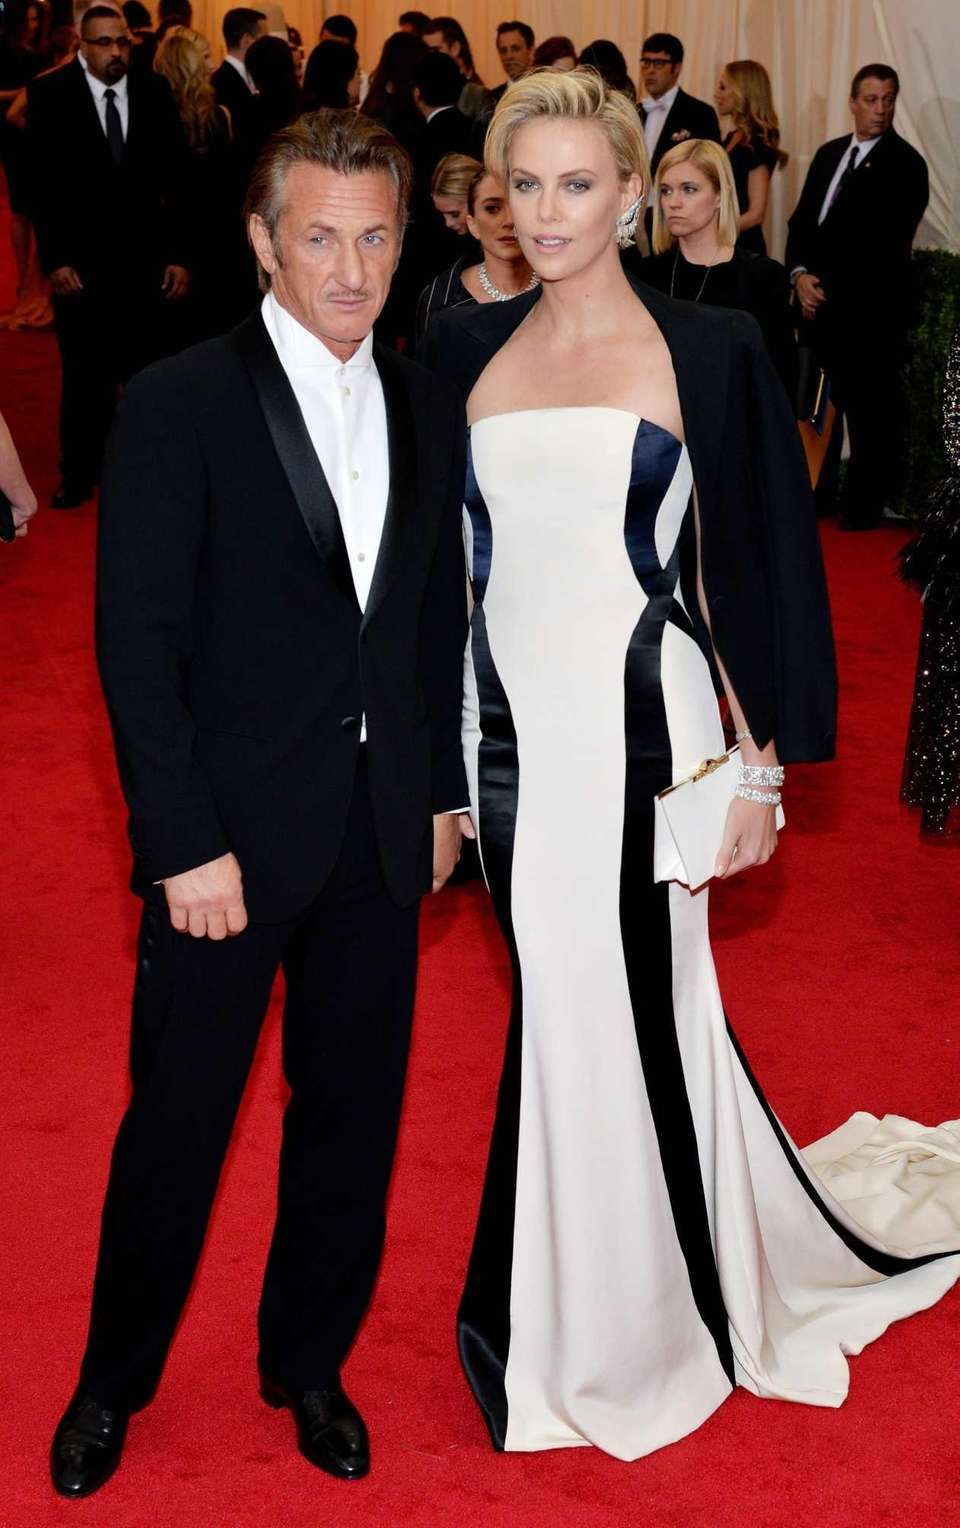 Sean Penn and Charlize Theron, in Dior Haute